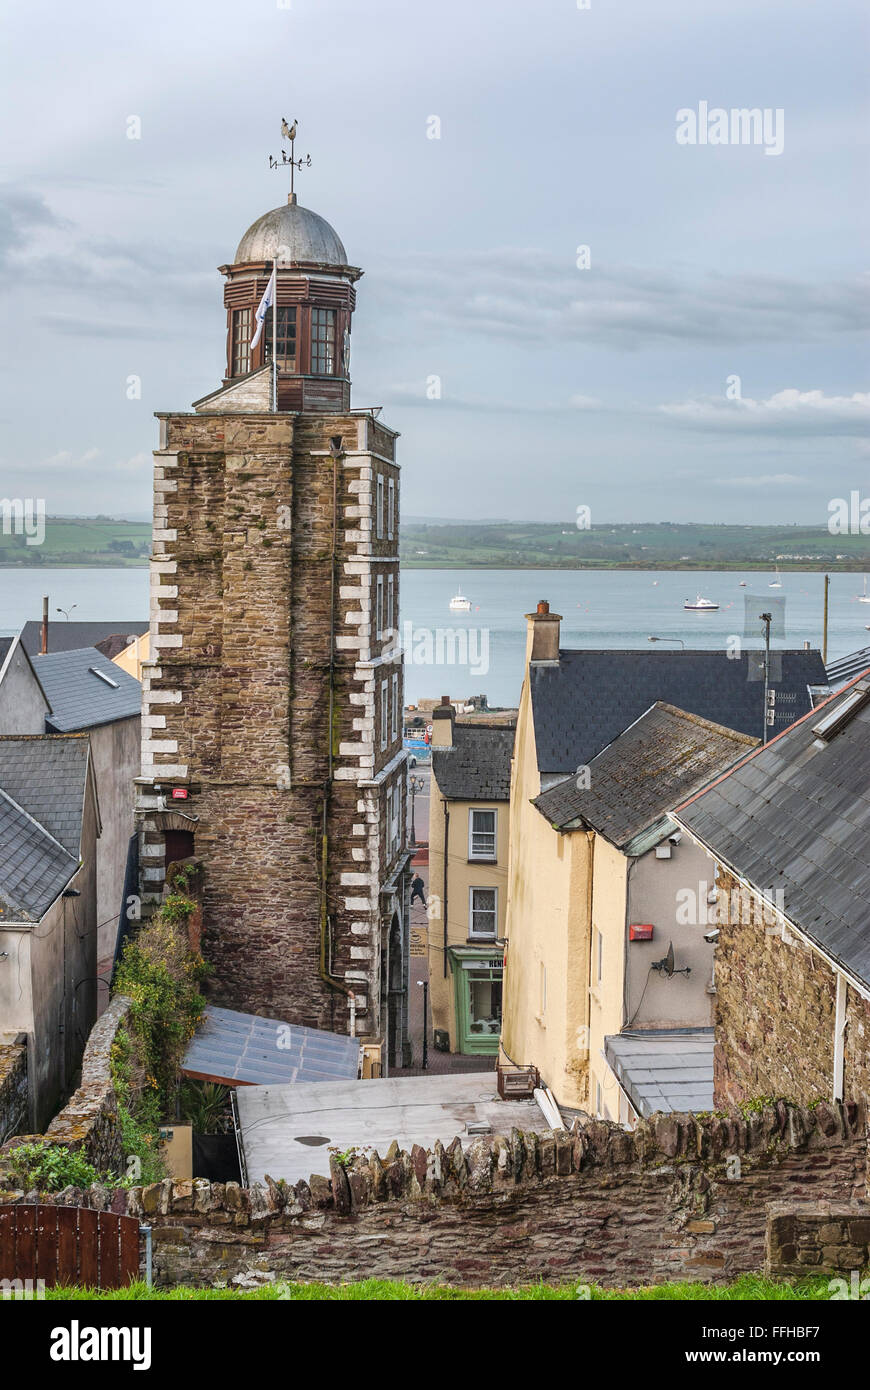 Historical Clock Tower of Youghal, Ireland | Historischer Uhrturm von Youghal am Black Water River, Irland - Stock Image